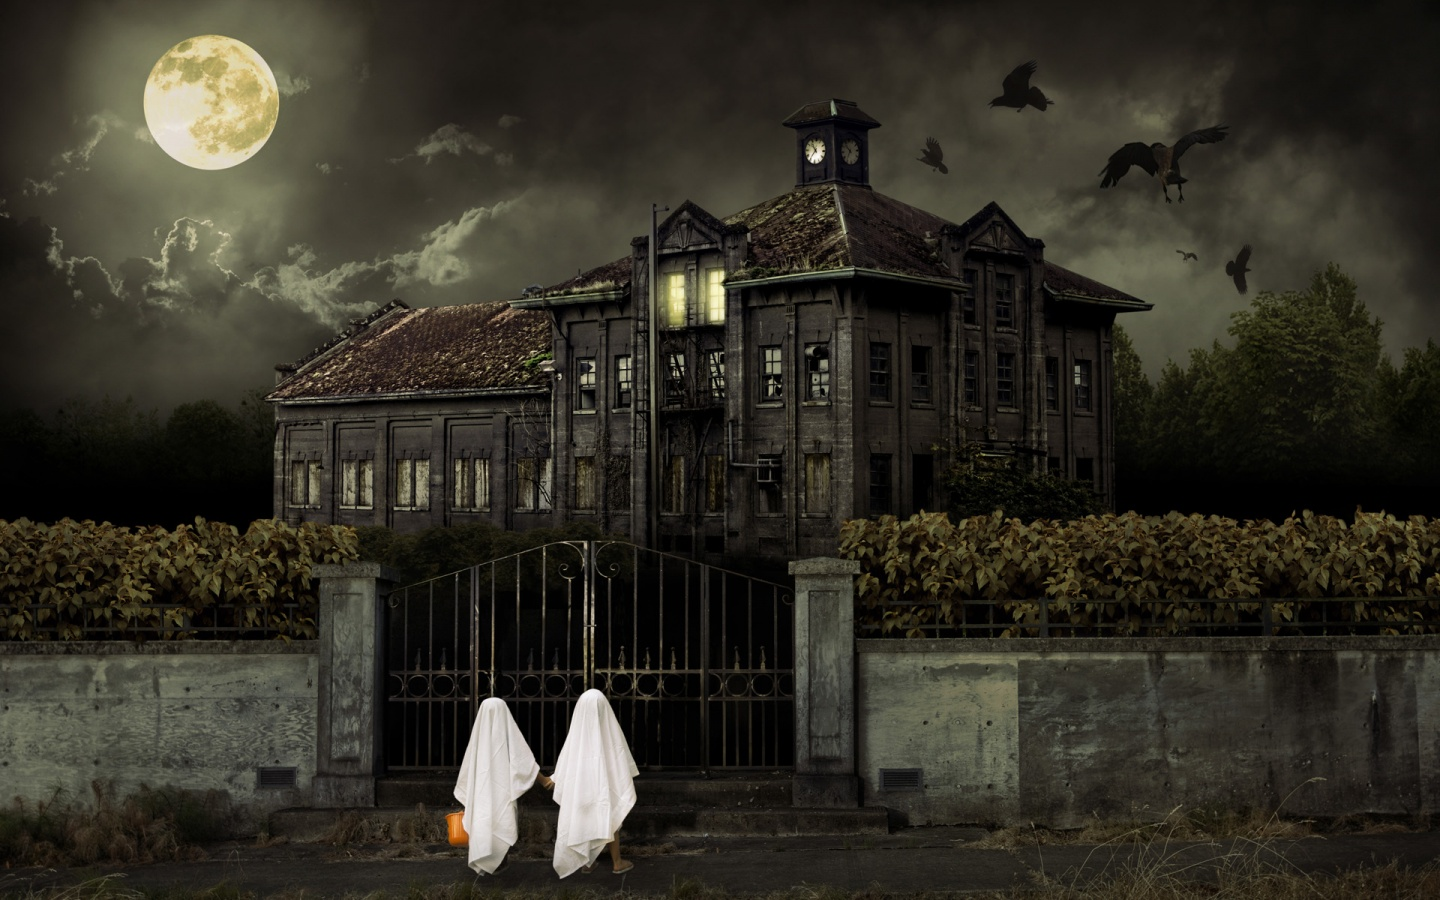 Haunted House HD Wallpaper HD Wallpapers High Quality Wallpapers 1440x900